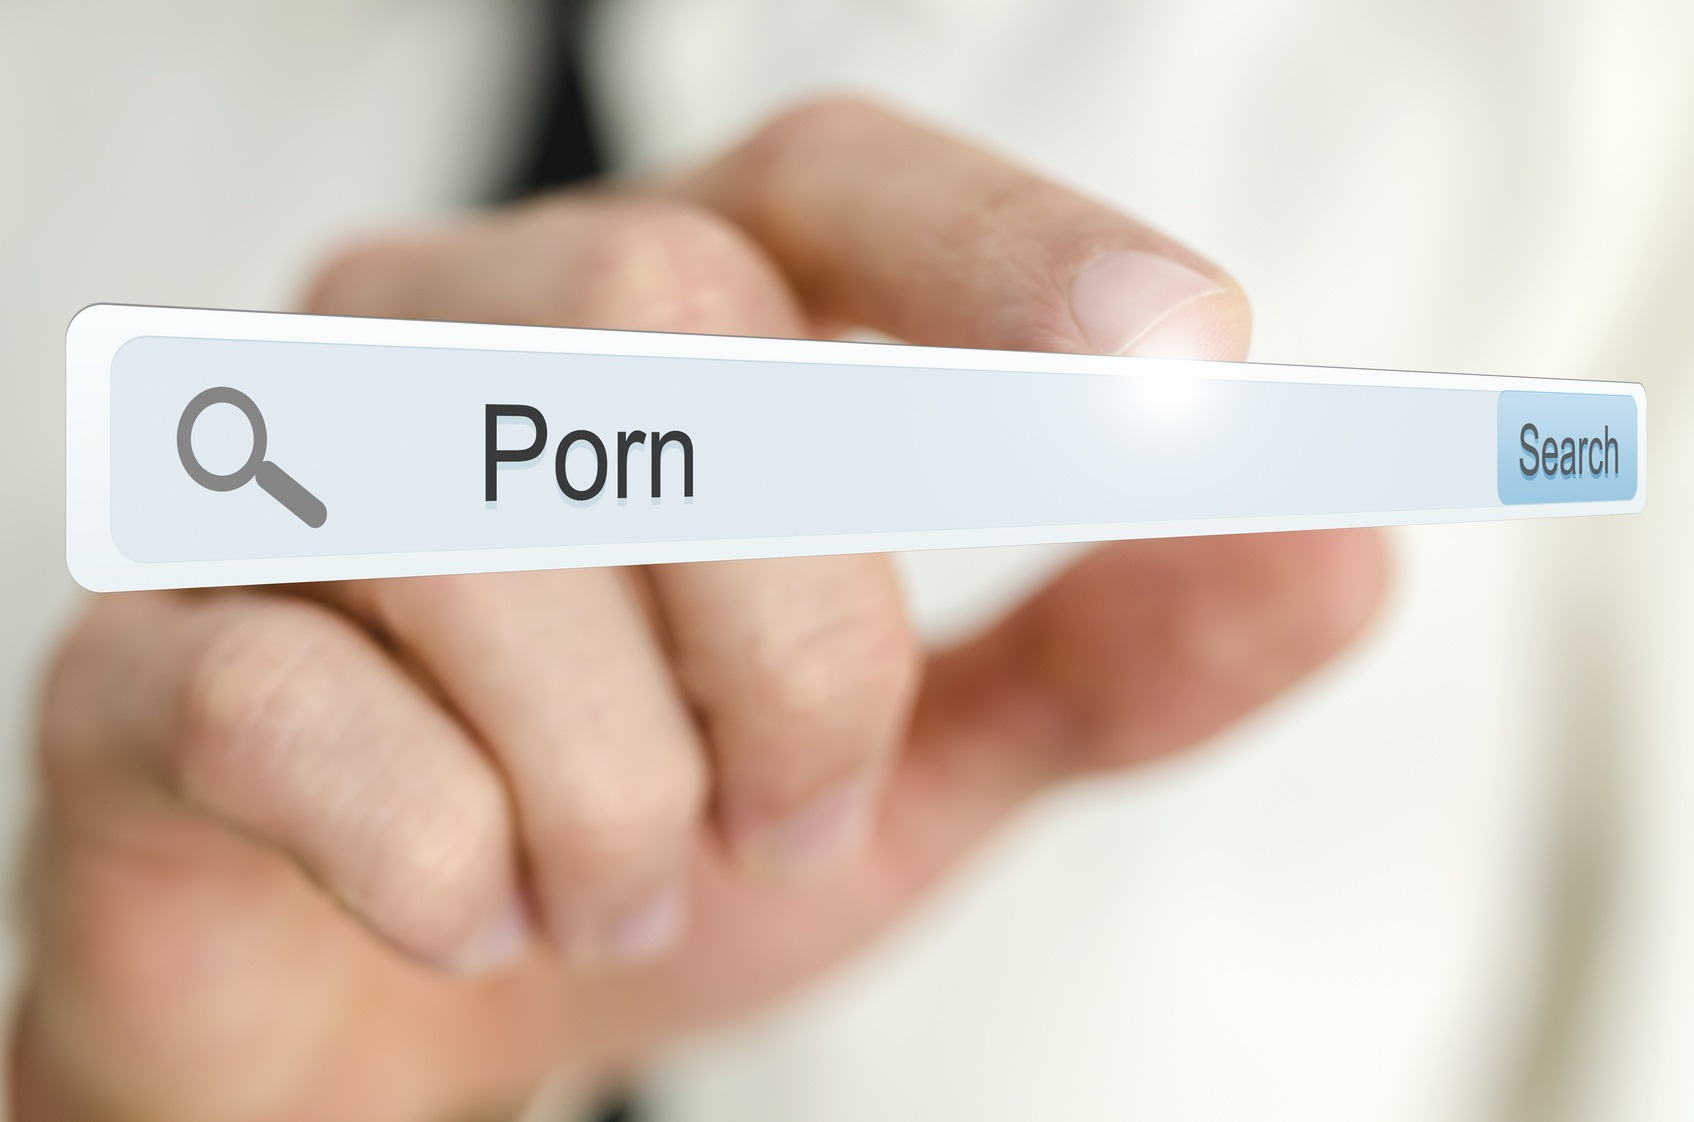 Pornography: Connecting the Dots Between Exploitation